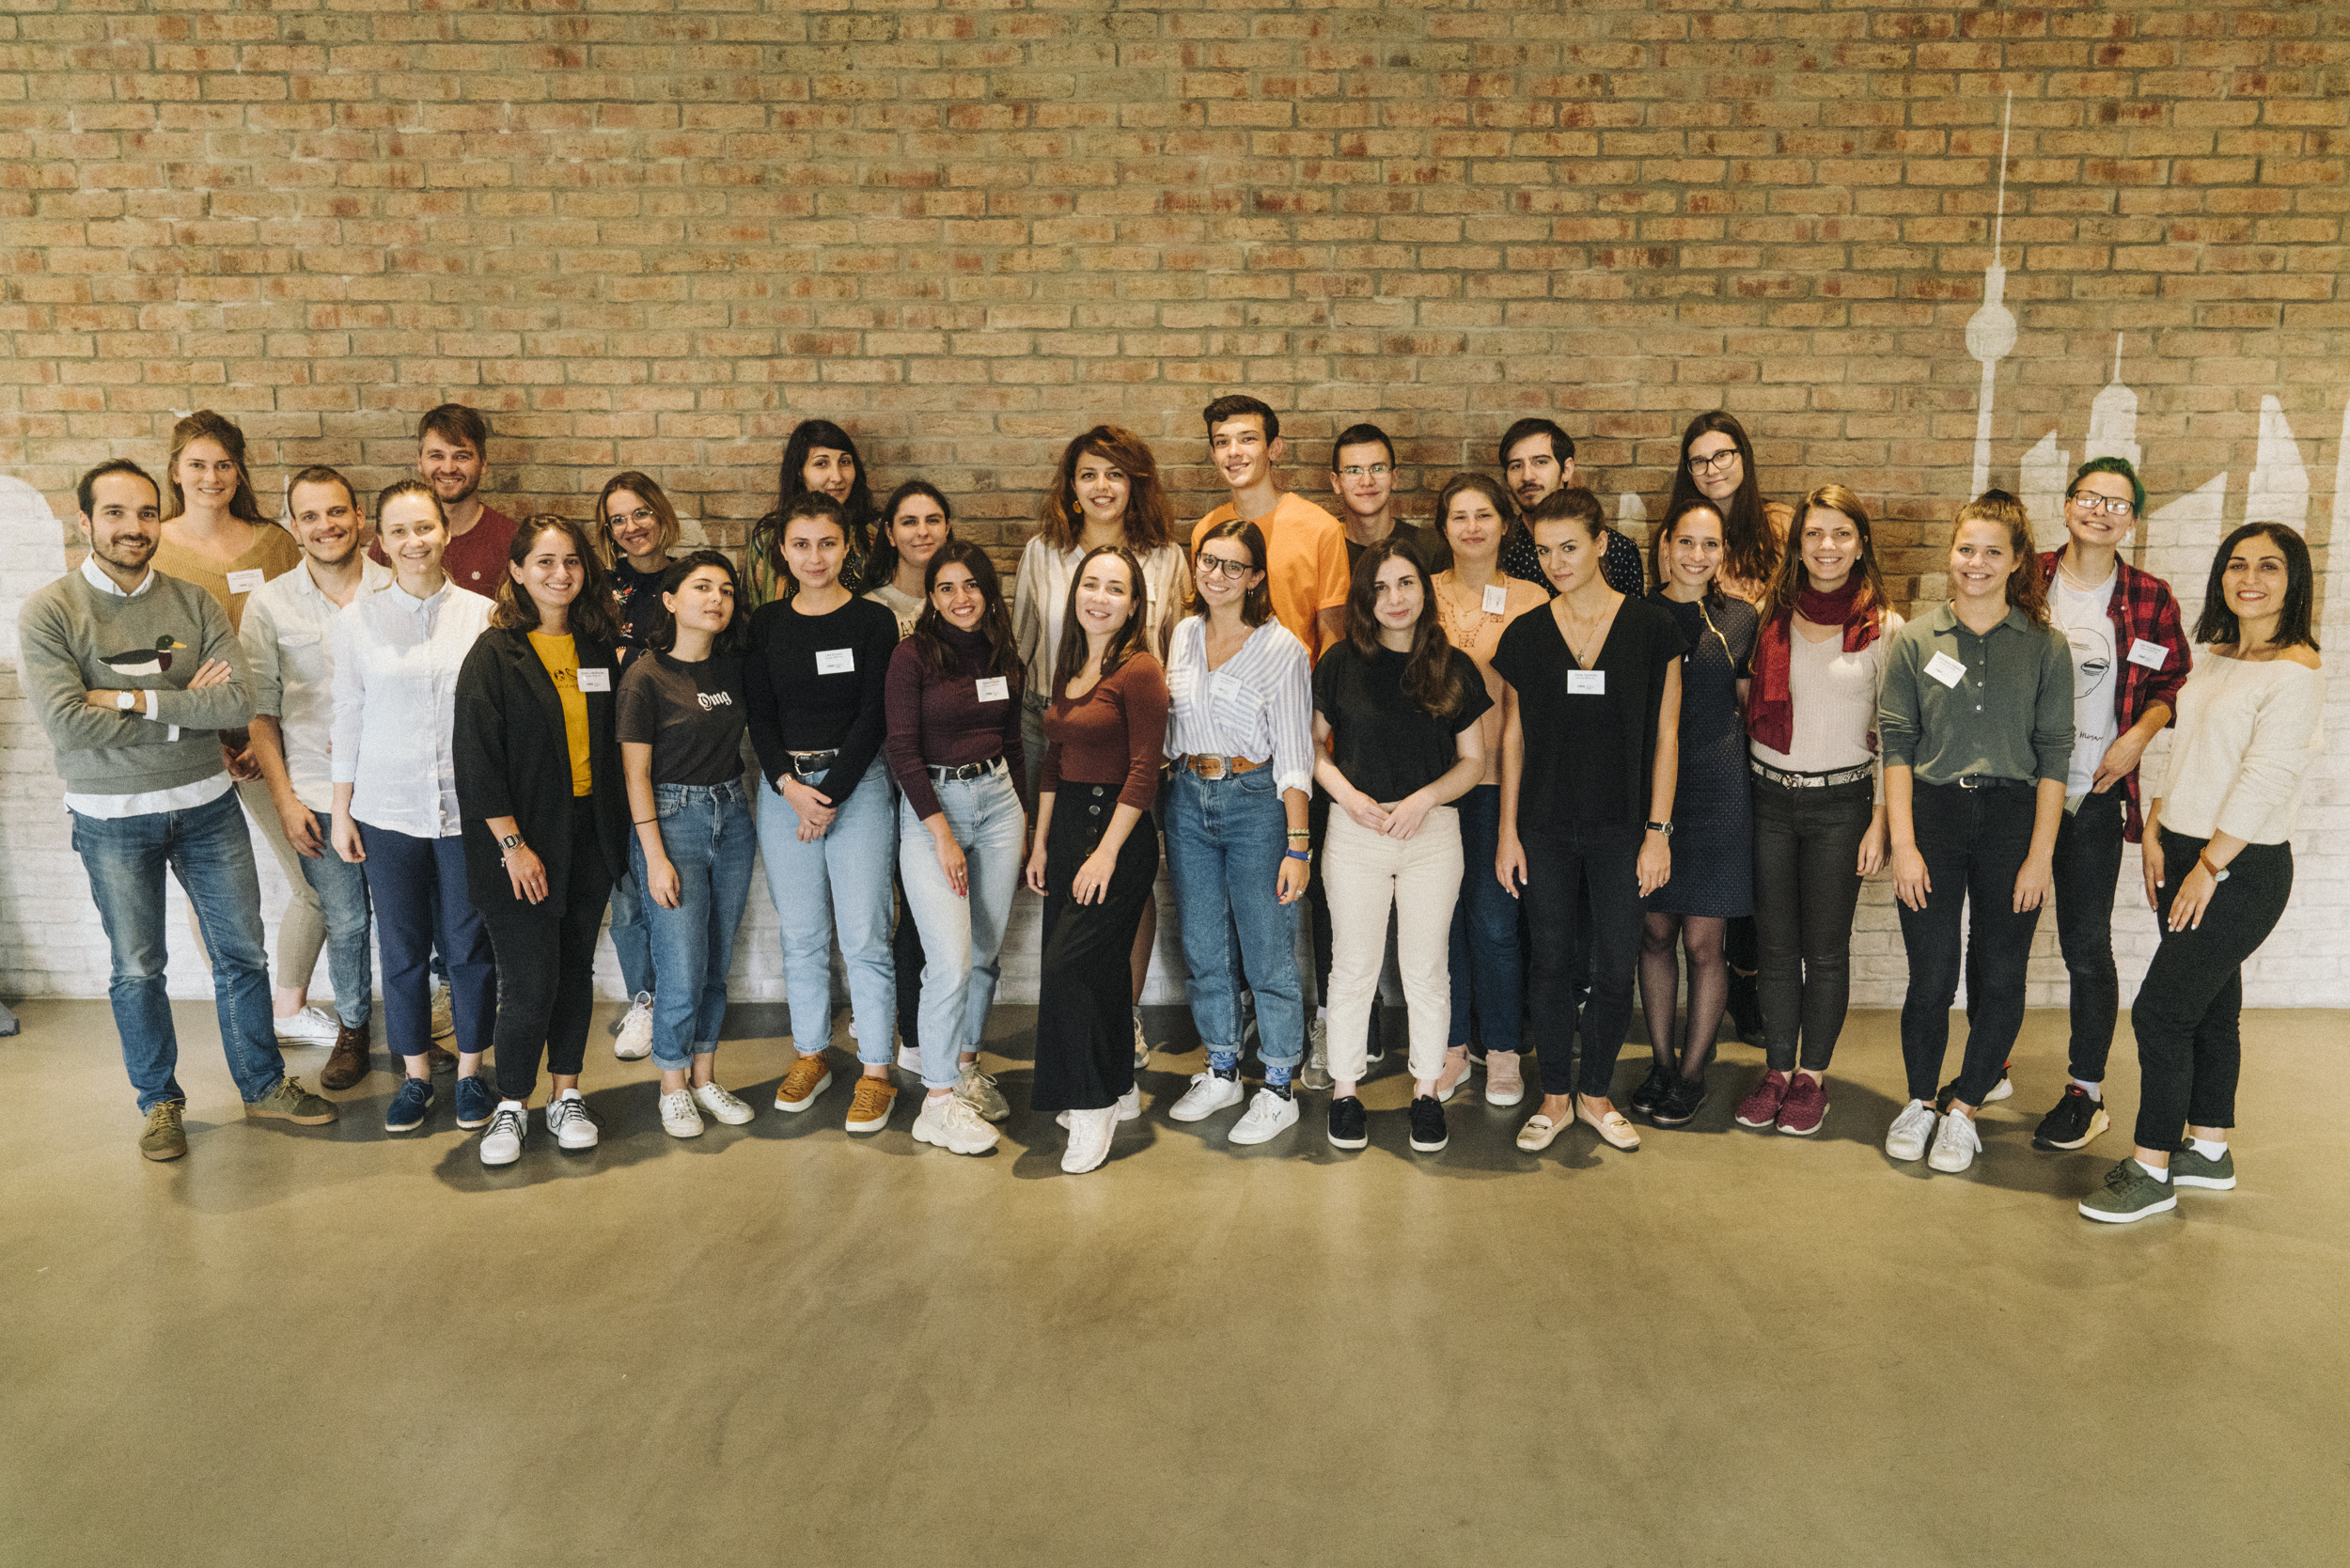 Gruppenfoto der M100 Young European Journalists 2019